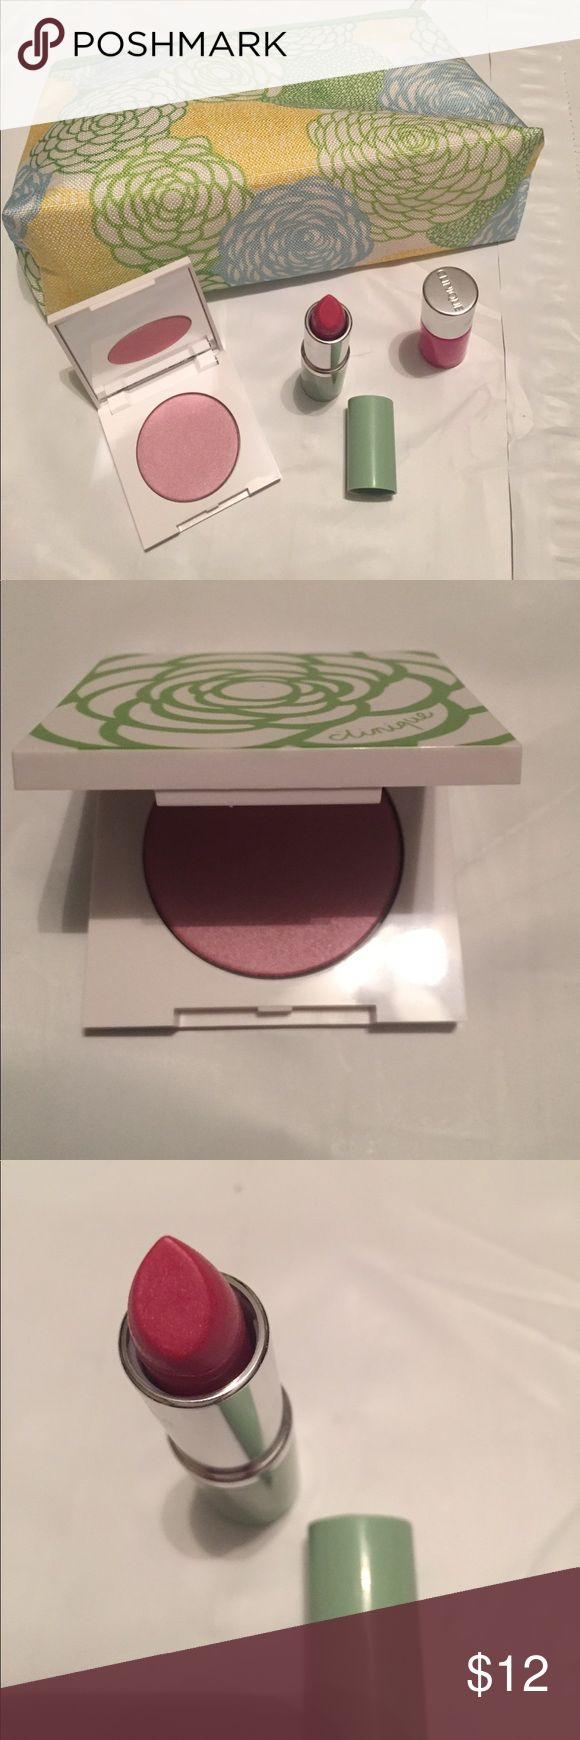 Clinique set Very gently used Clinique makeup back with blush (iced lotus), lipstick (glazed berry), and nail polish. Clinique Makeup